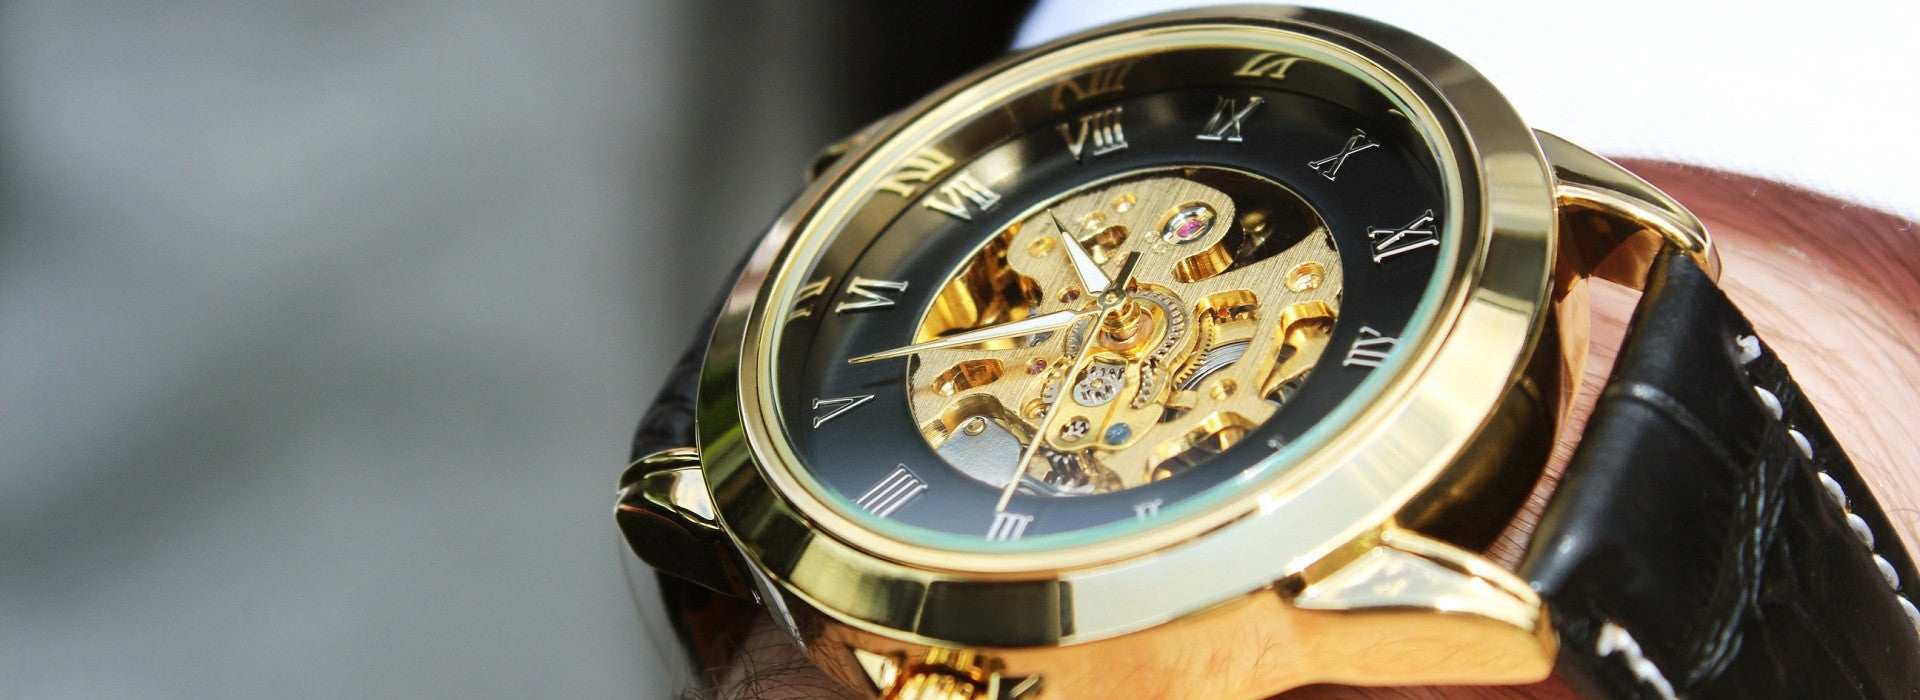 Belgravia Skeleton Watch